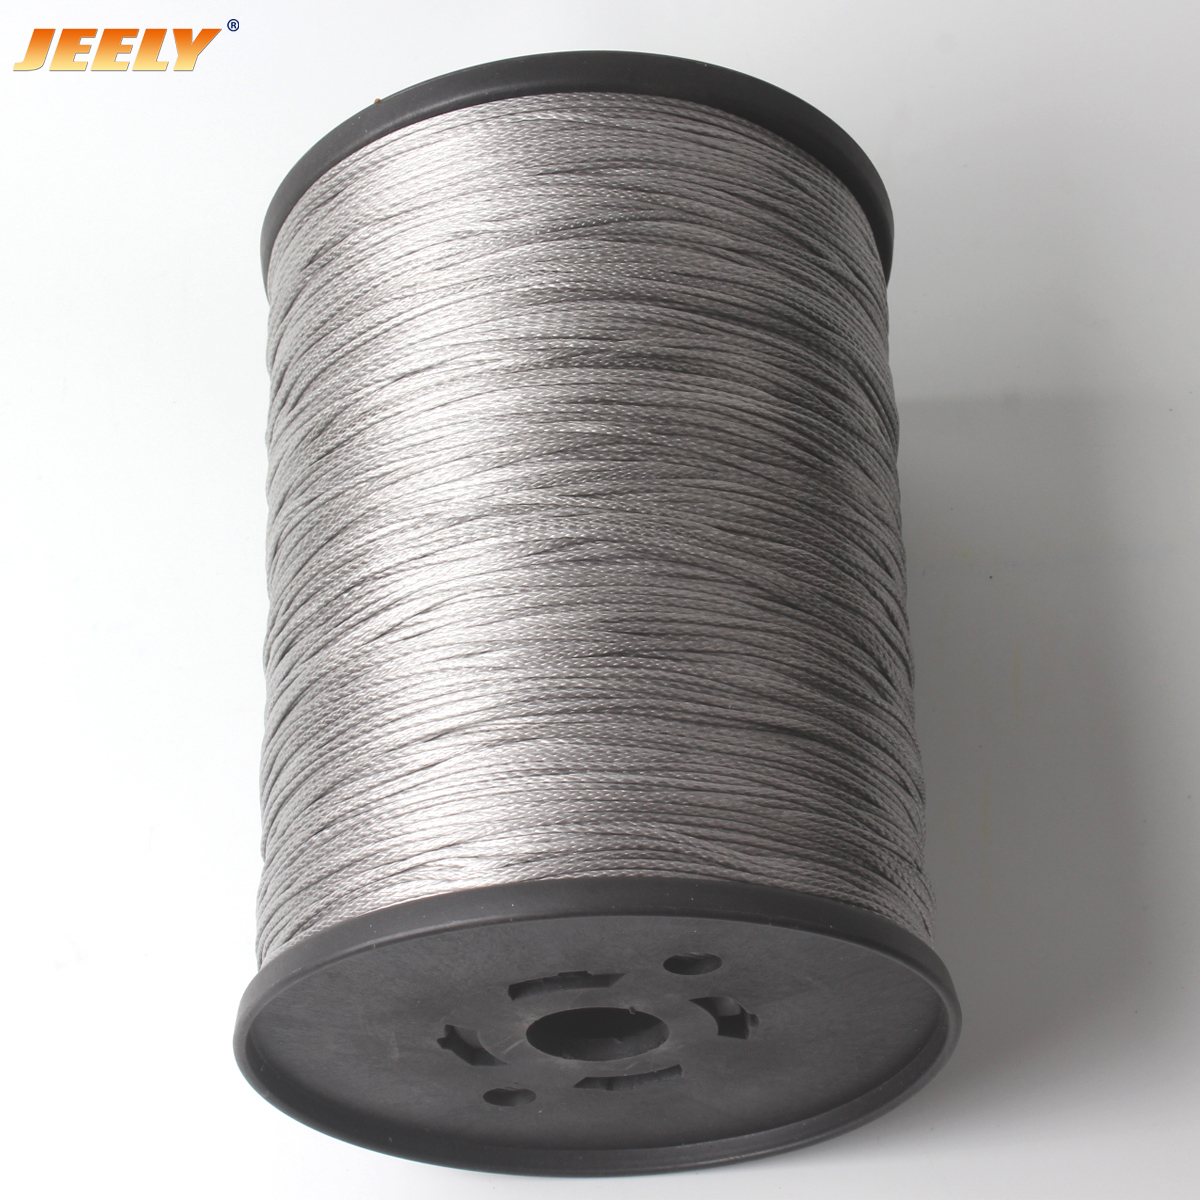 1.2mm 4 strands Spectra Hollow Braided Rope